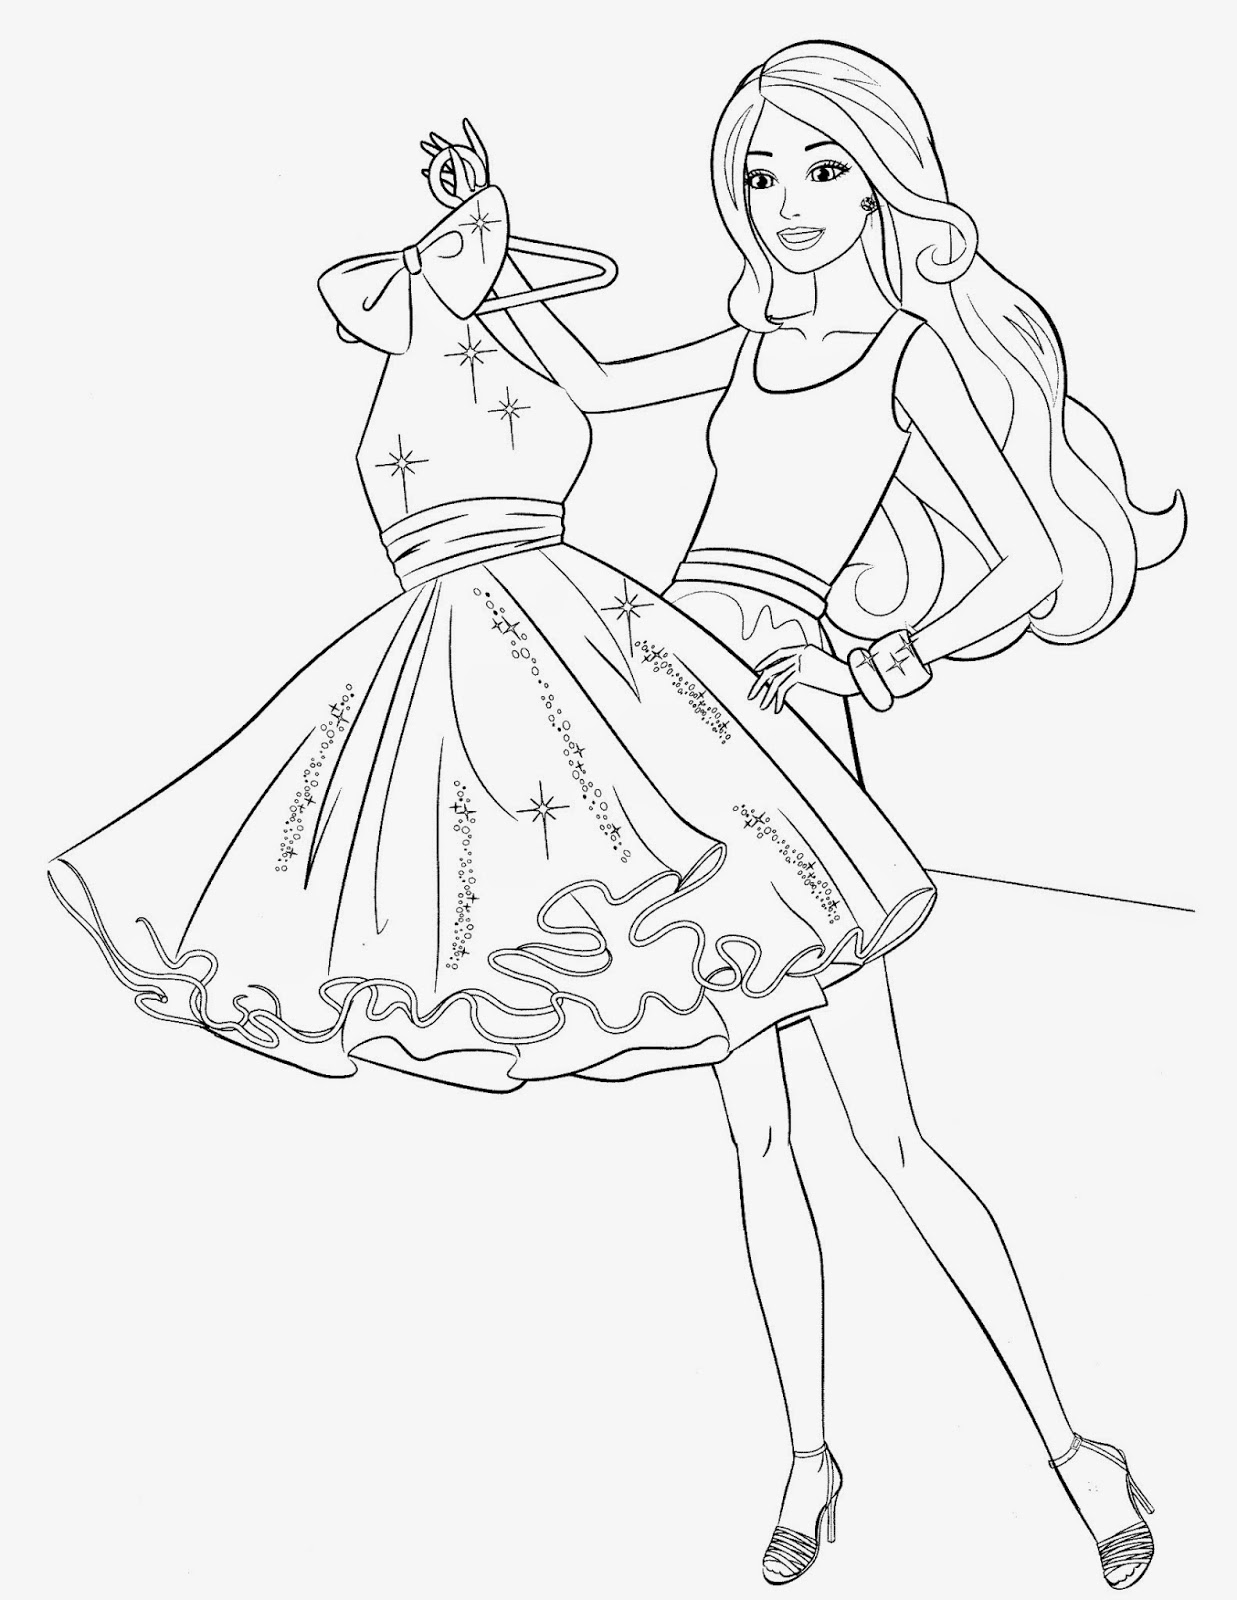 barbie doll colouring pictures barbie dolls colouring in pages princess coloring pages colouring doll pictures barbie